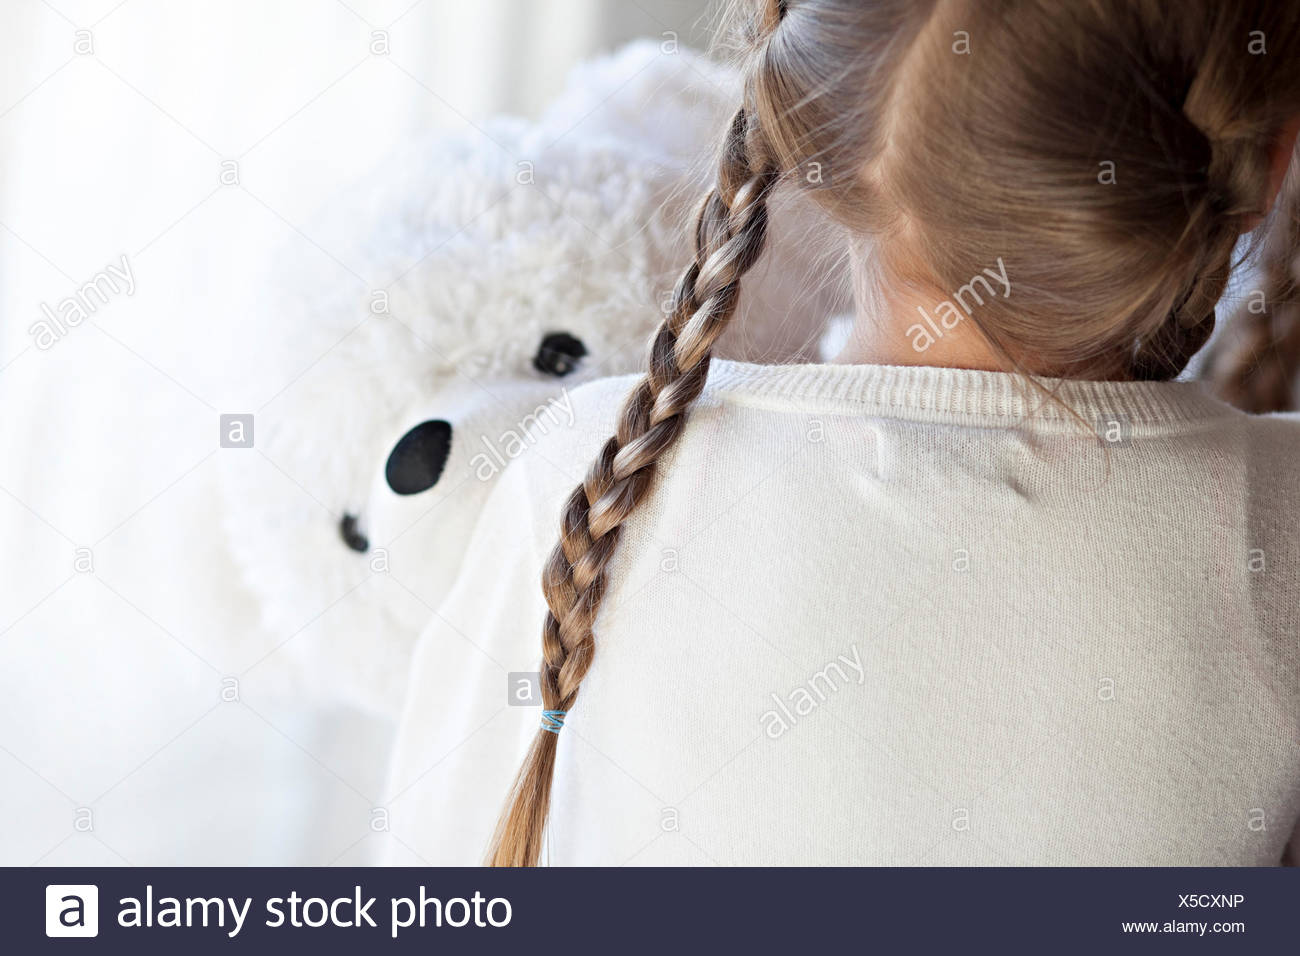 Rear view of a girl Hugging a teddy Bear - Stock Image